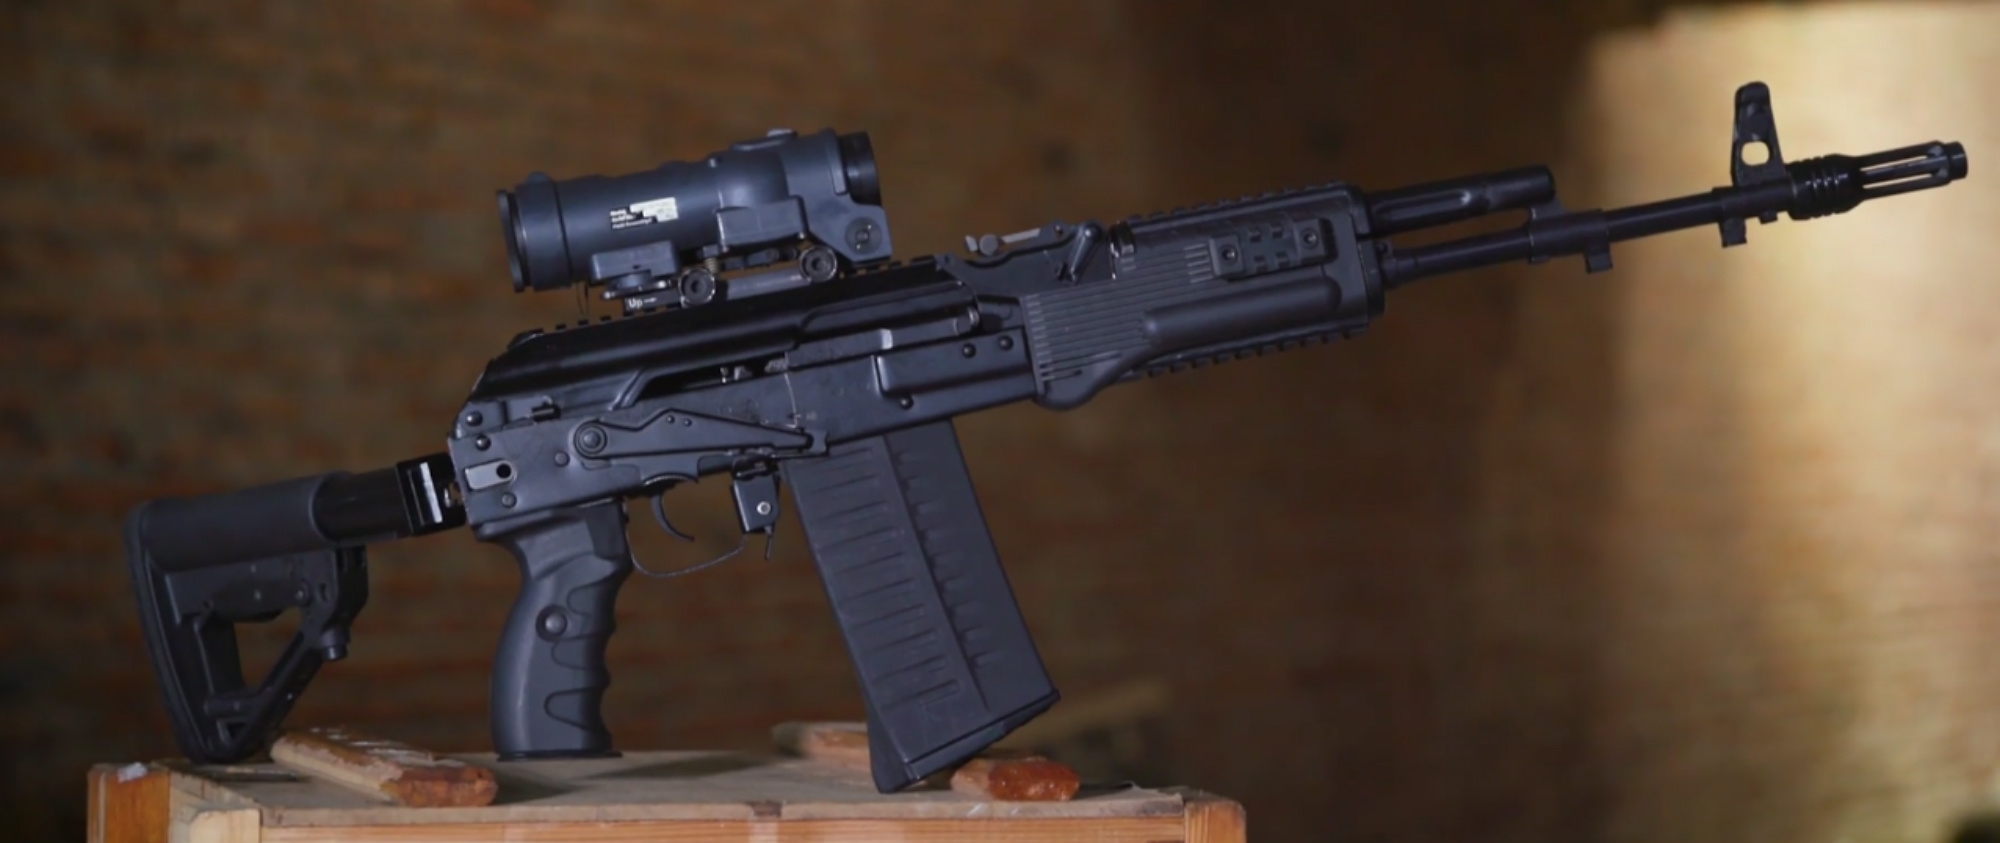 The prototype AK-308 chambered in 7.62x51mm.